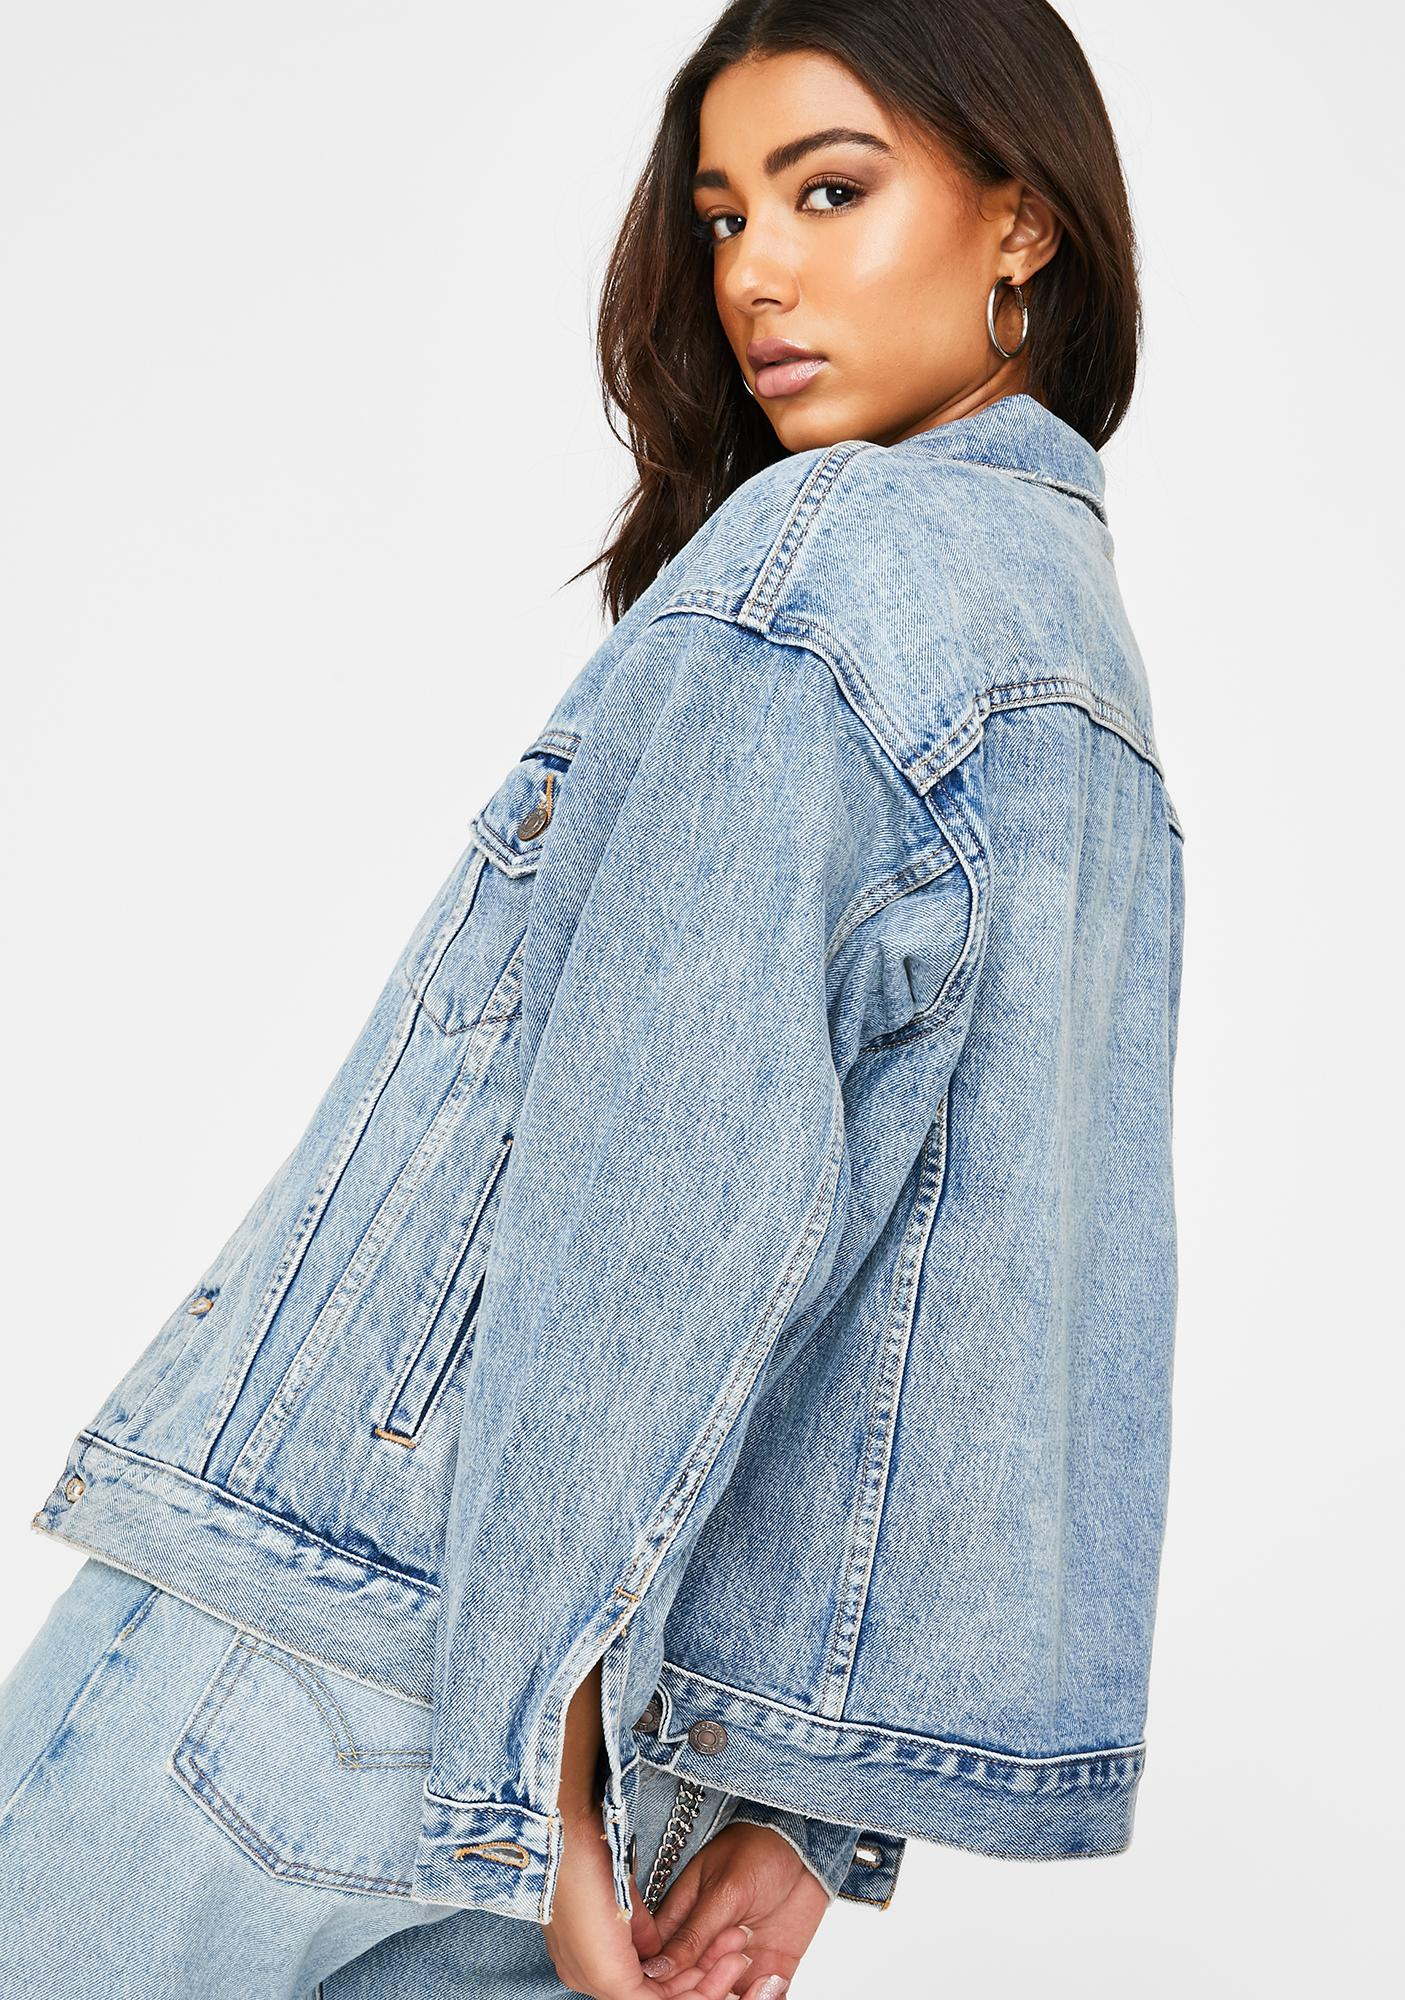 Levis Happy Together Dad Trucker Jacket